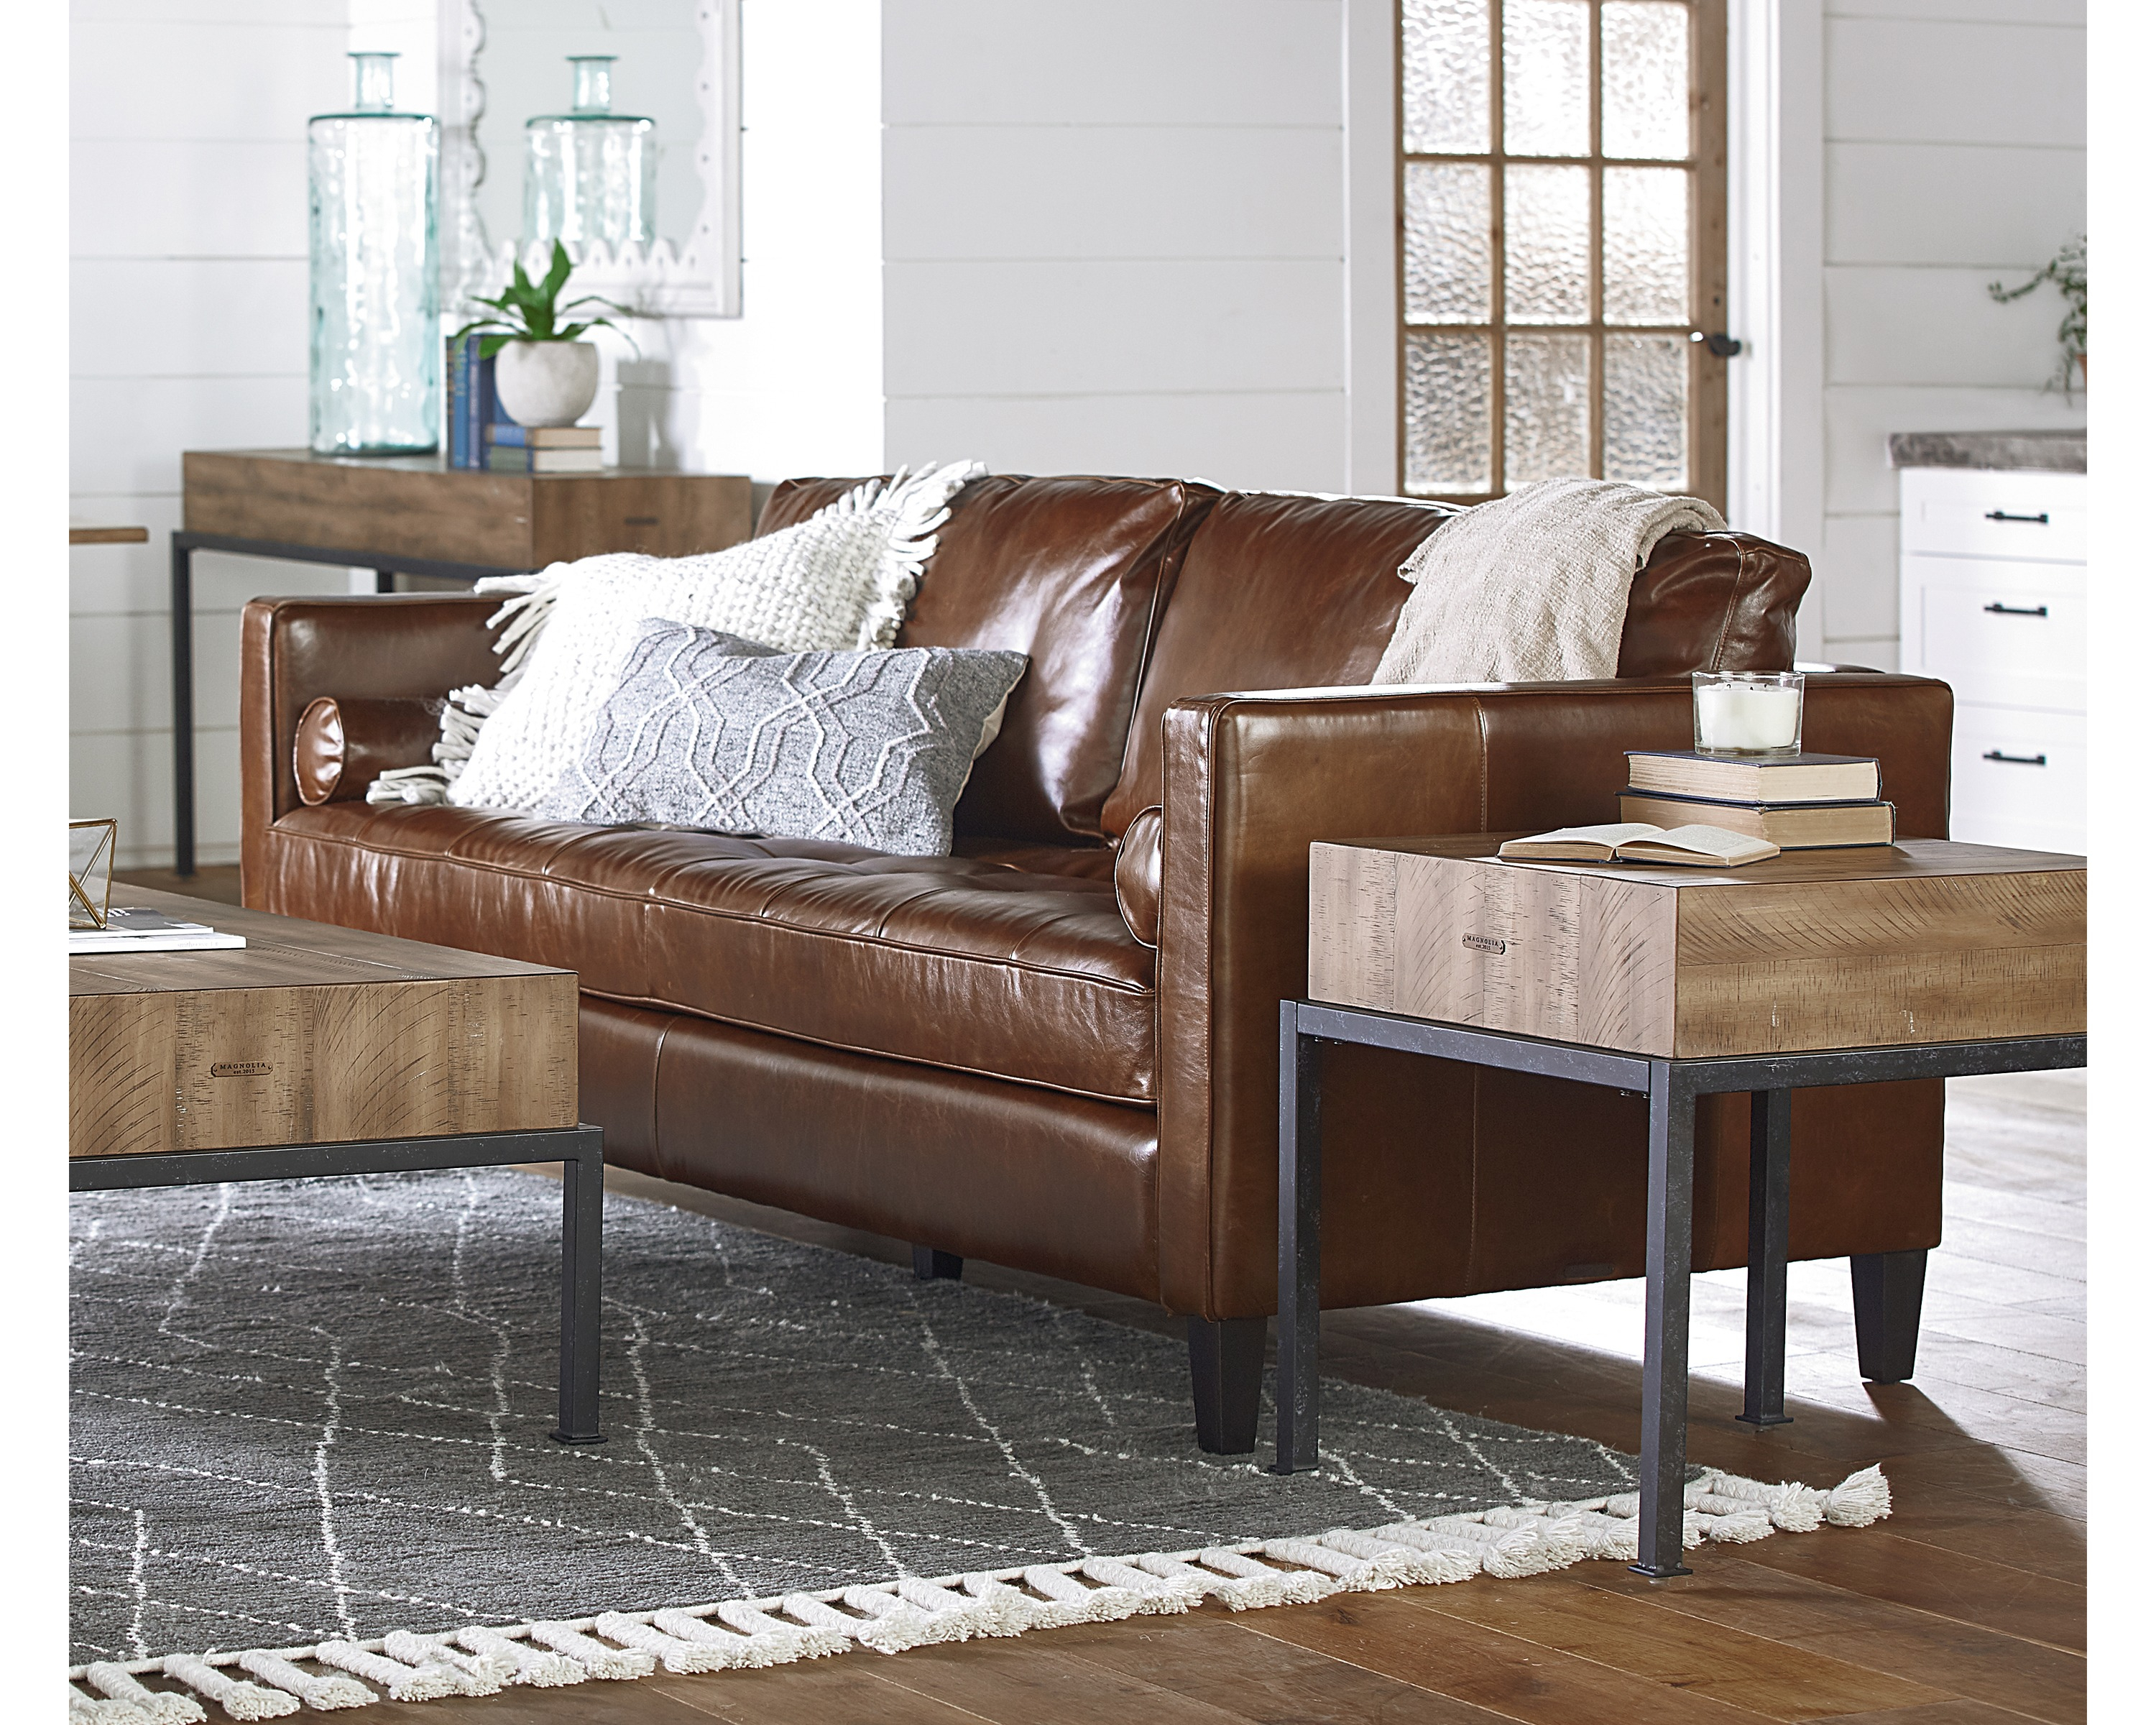 Dapper Sofa - Magnolia Home in Magnolia Home Dapper Fog Sofa Chairs